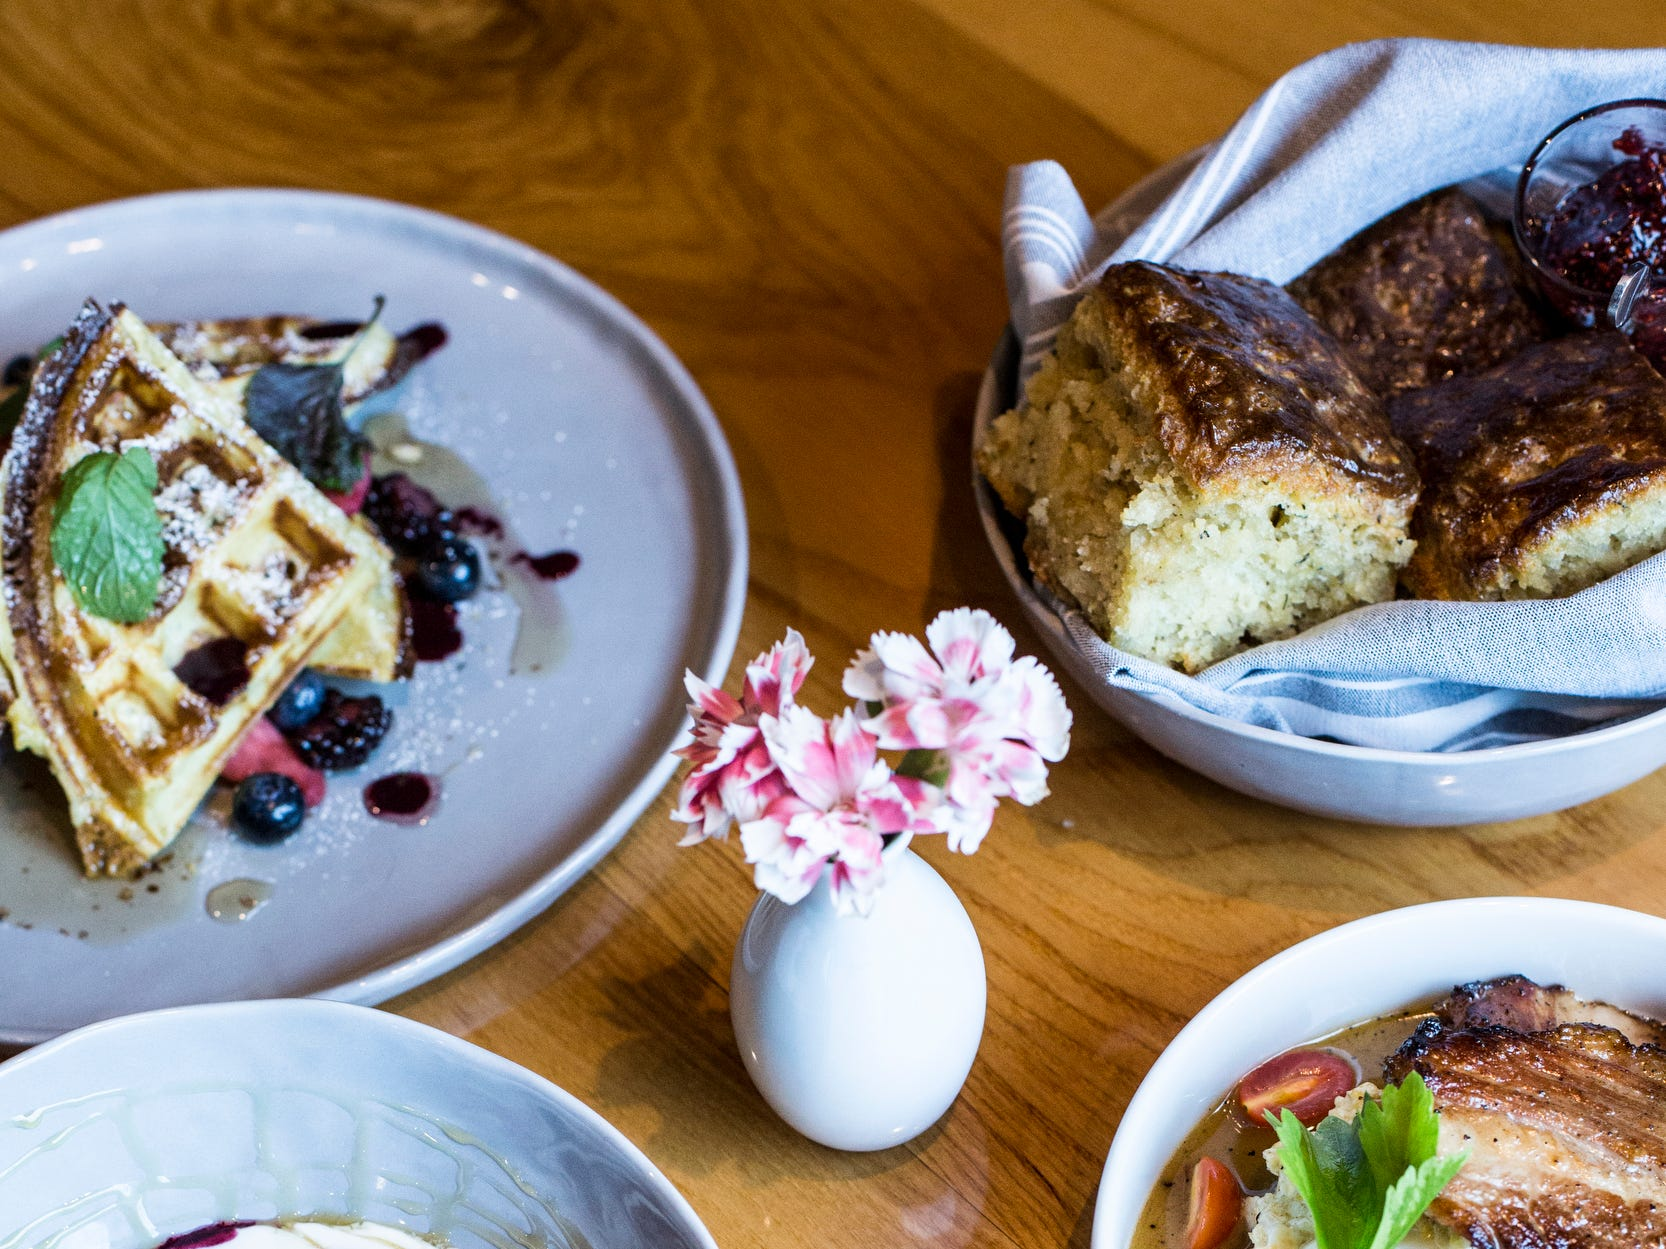 February 10, 2019 - A variety of plates available during Sunday brunch are seen at PO Press Public House & Provisions in Collierville. PO Press Public House & Provisions is located at 148 N Main St. in Collierville.